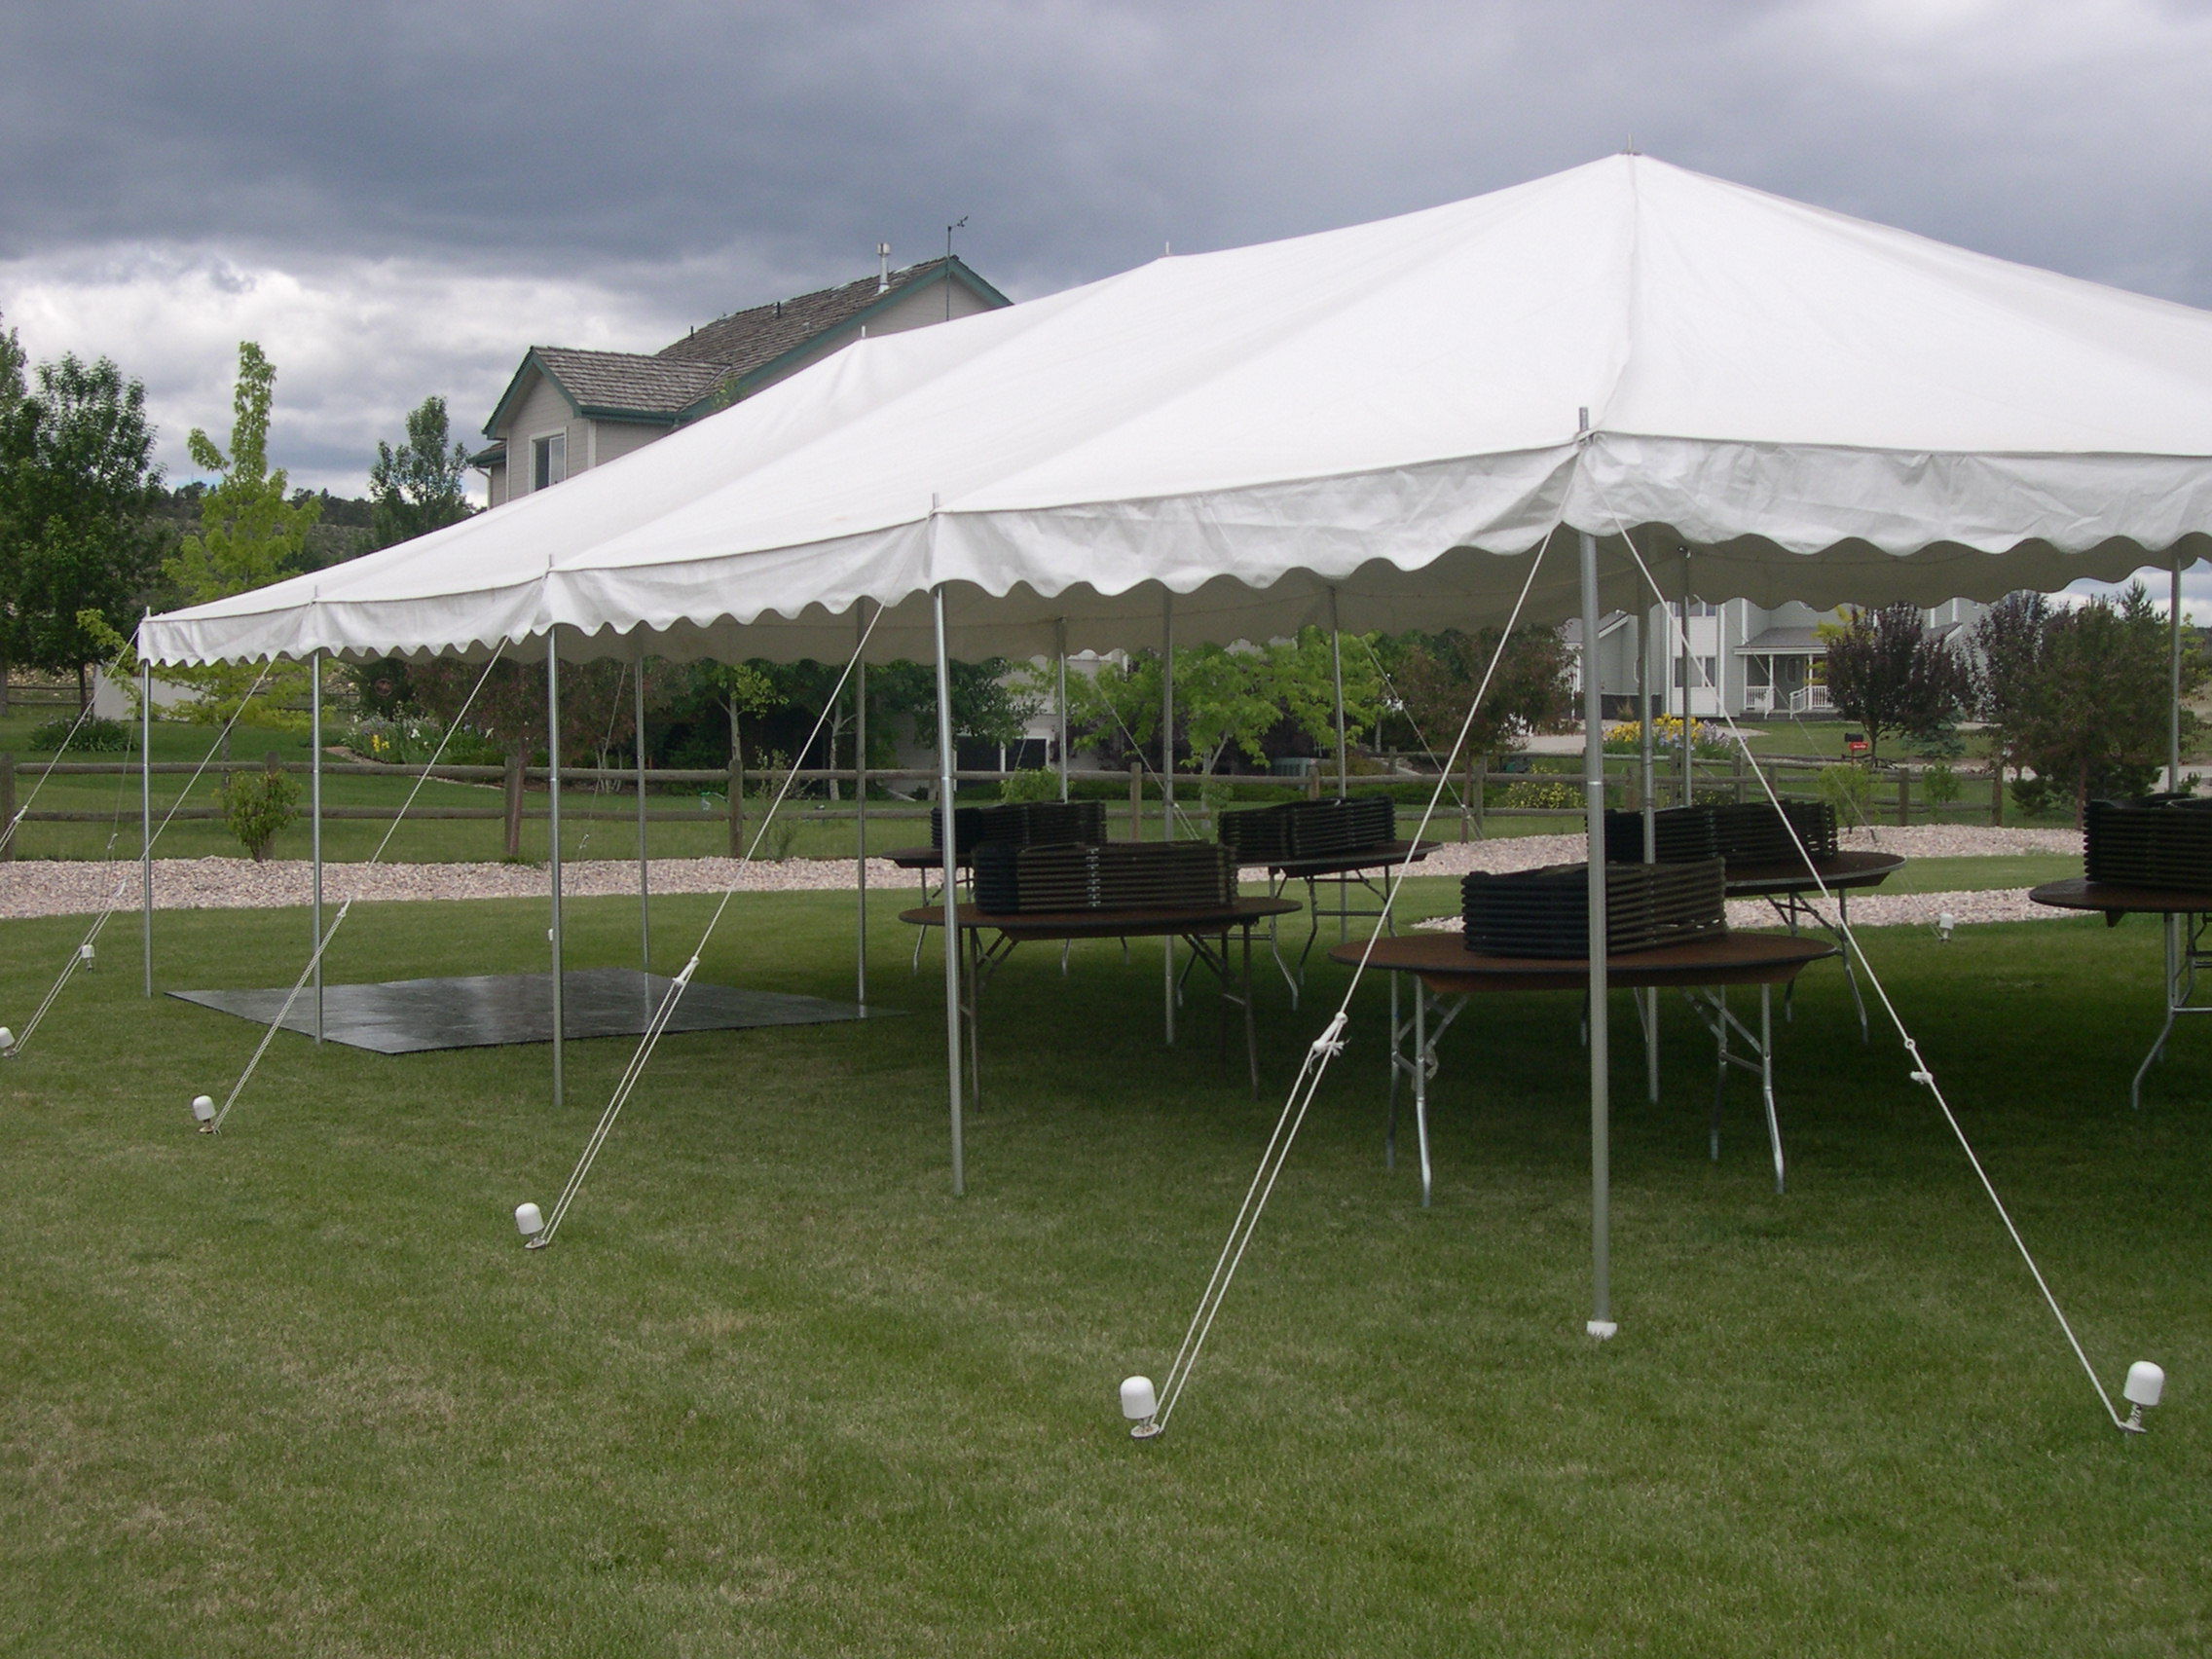 20' x 40' White Canopy Tent